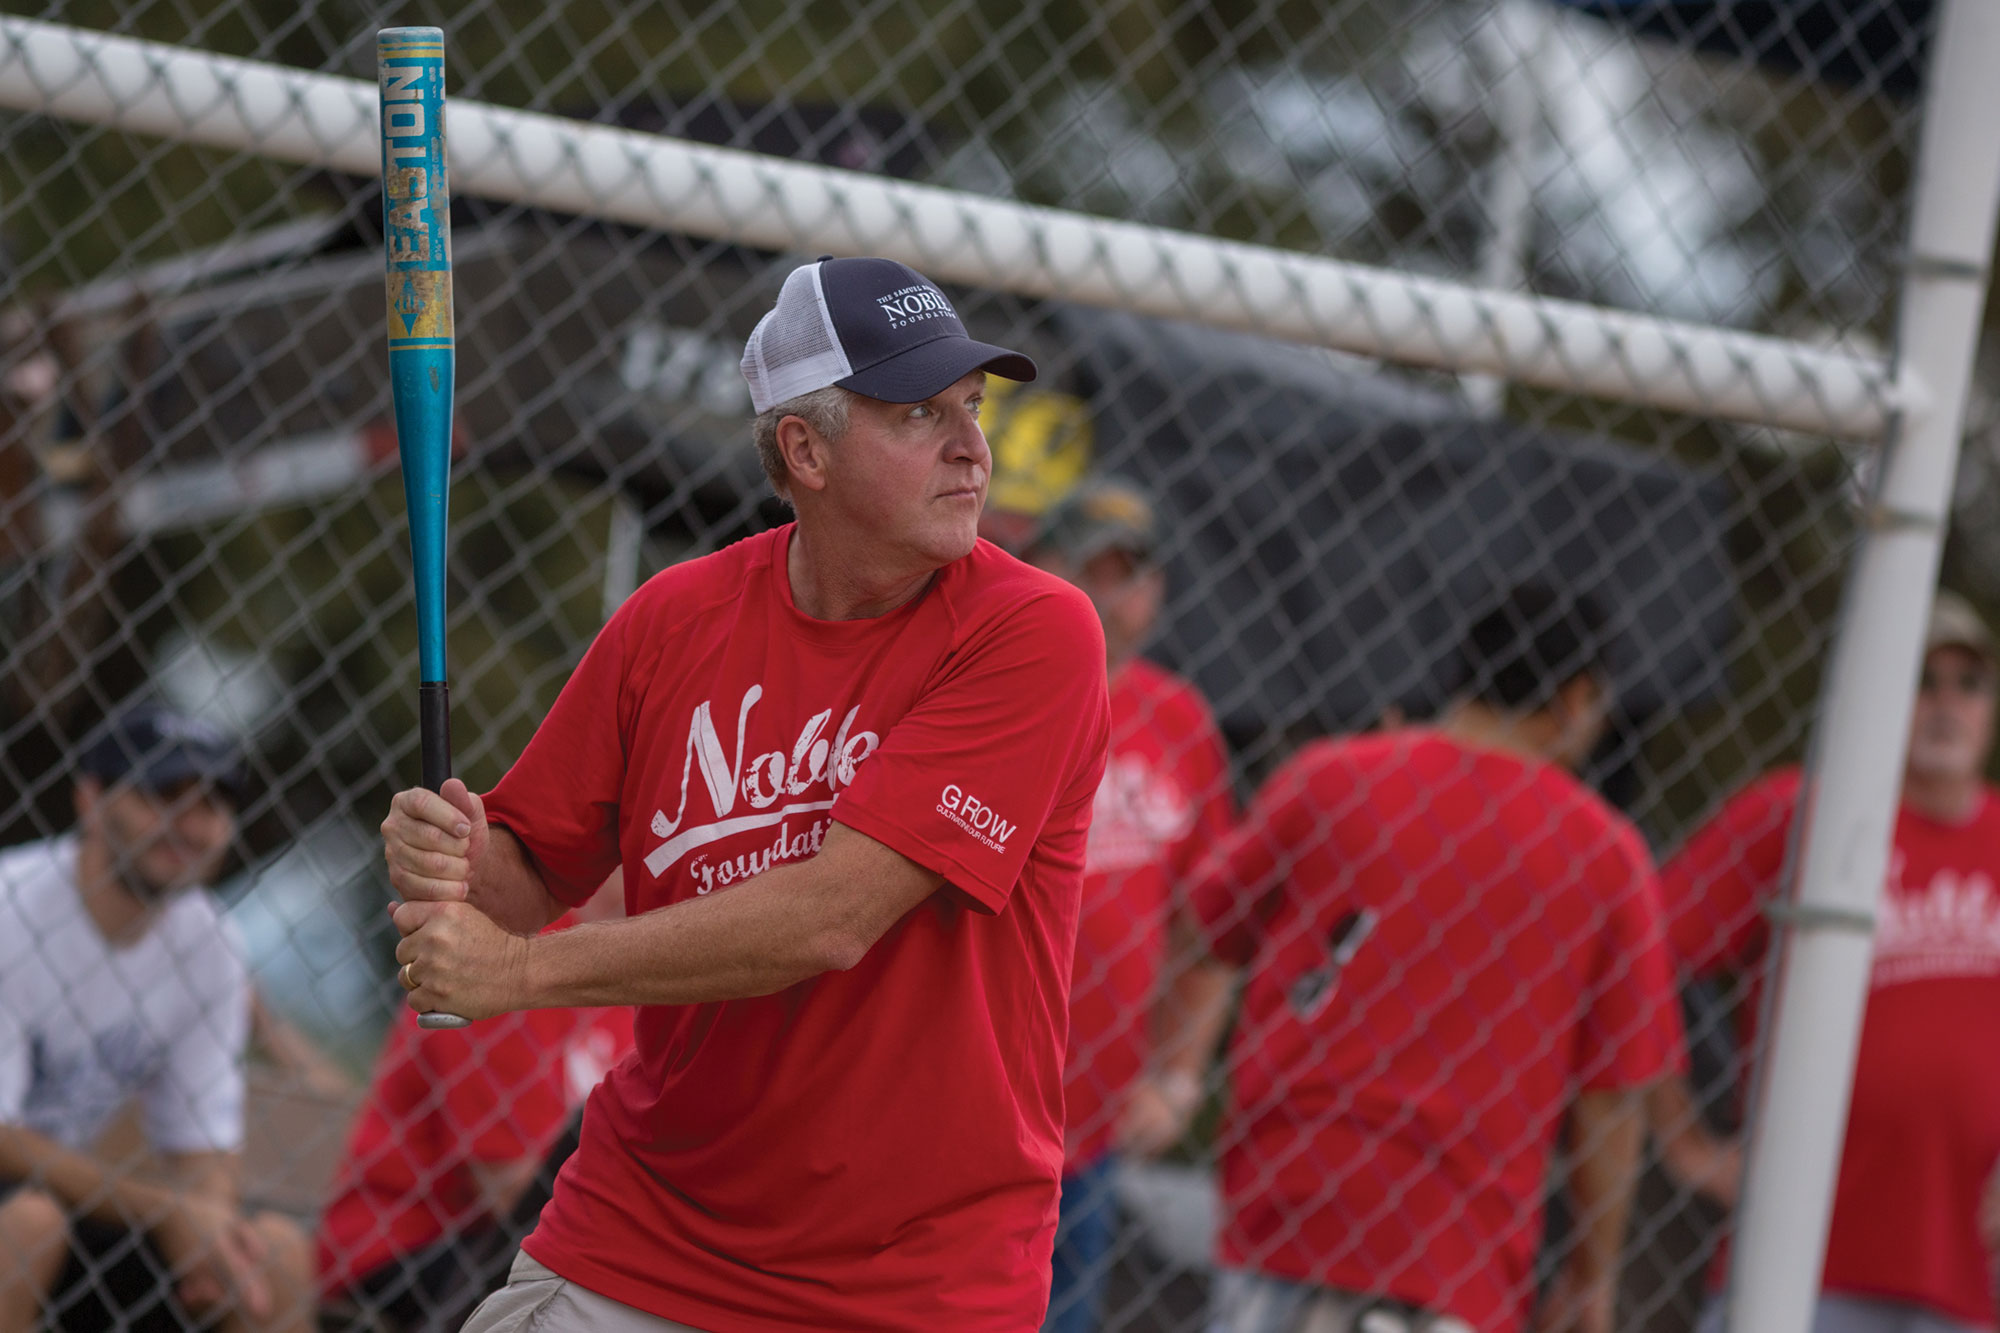 Bill Buckner plays softball as part of the Parkway Series, which brings together all employees for a day of fun and competition, in 2015.